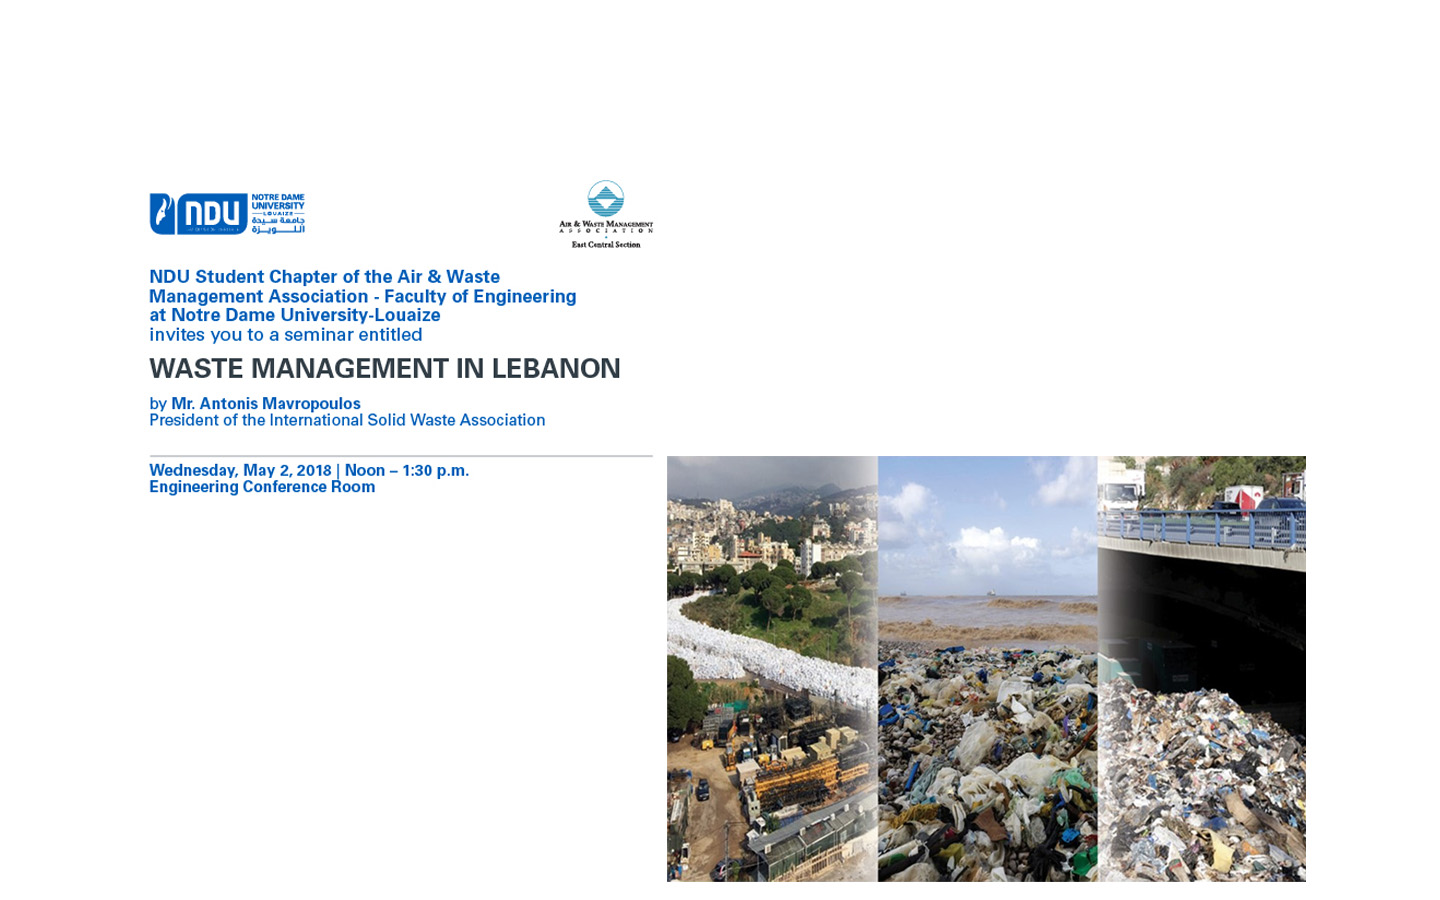 Waste Management in Lebanon